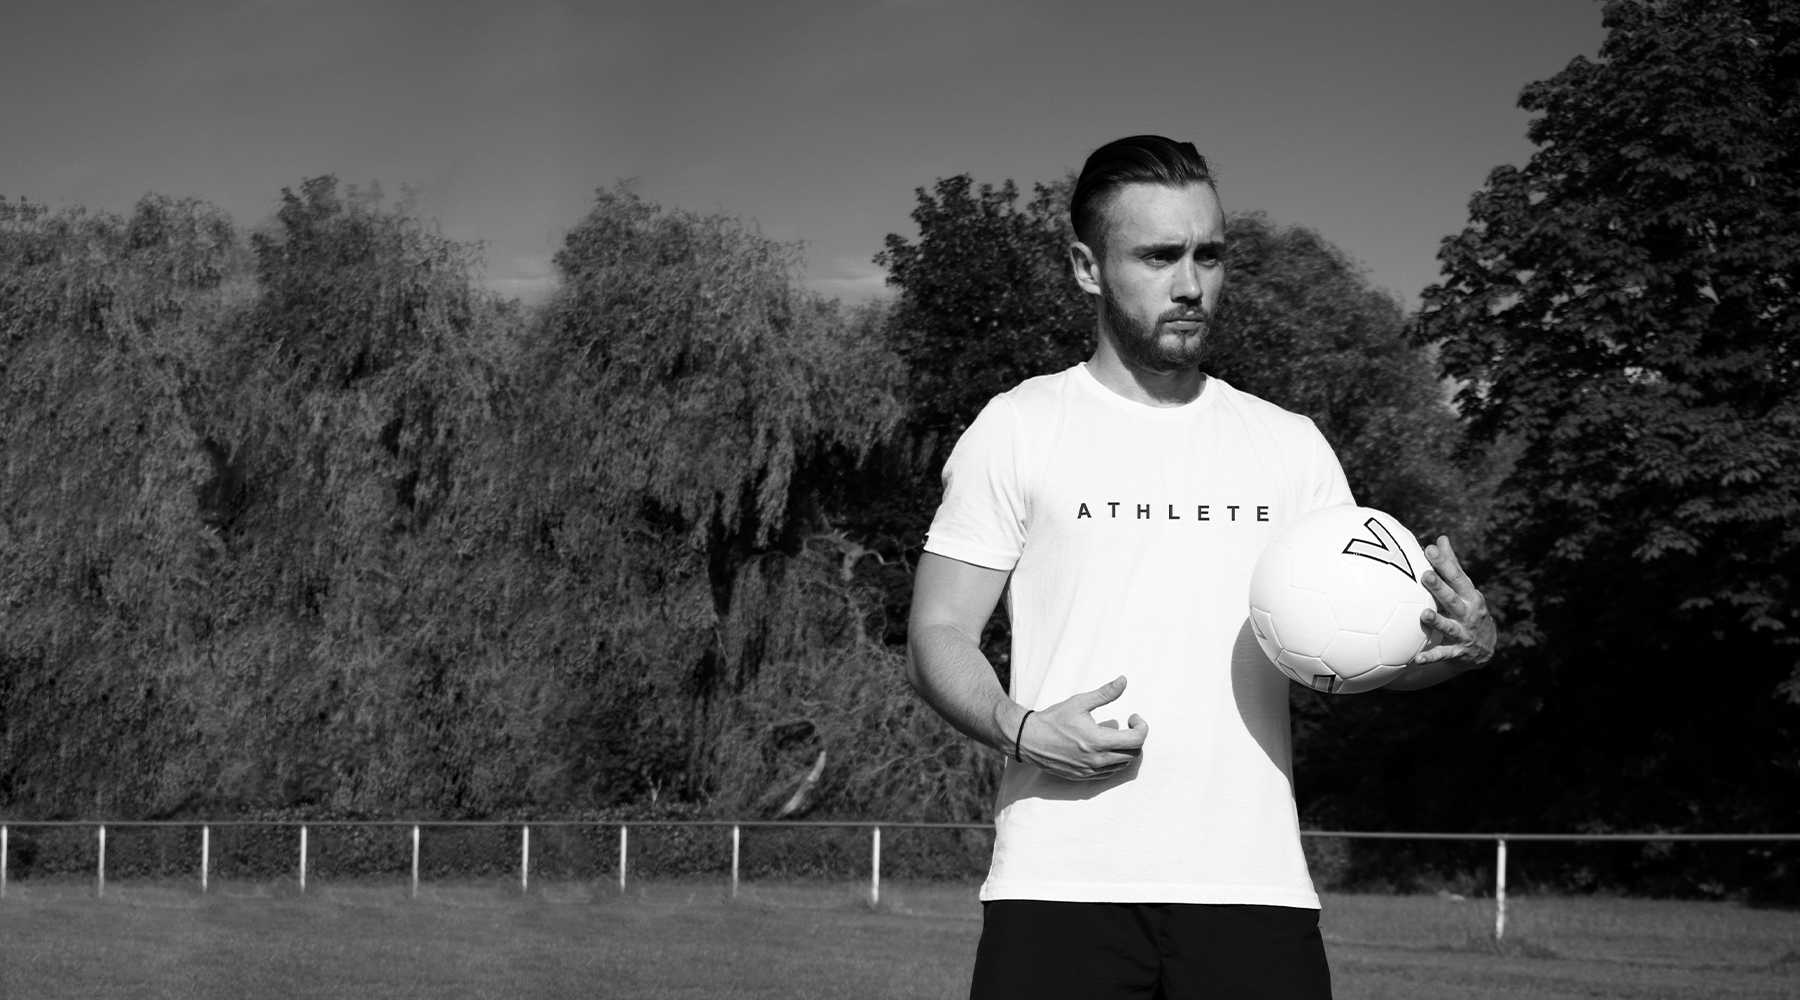 Black and white photo of a man holding a football on a football pitch